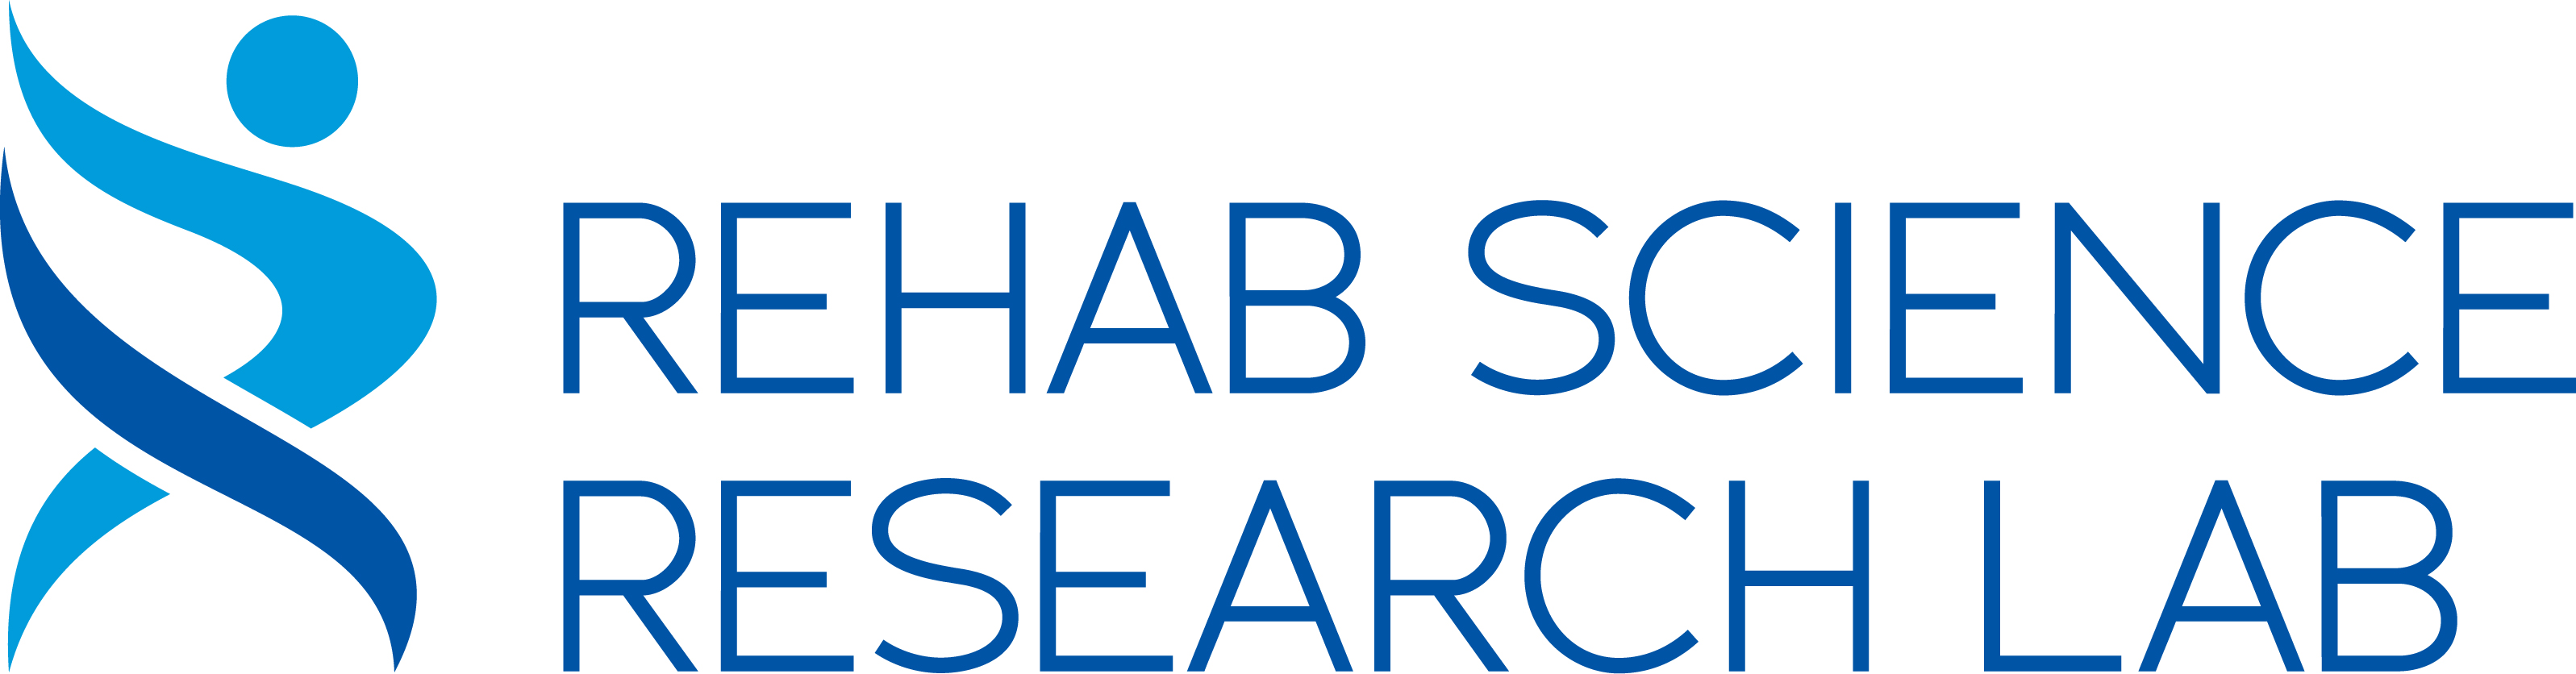 Rehab Science Research Lab Logo